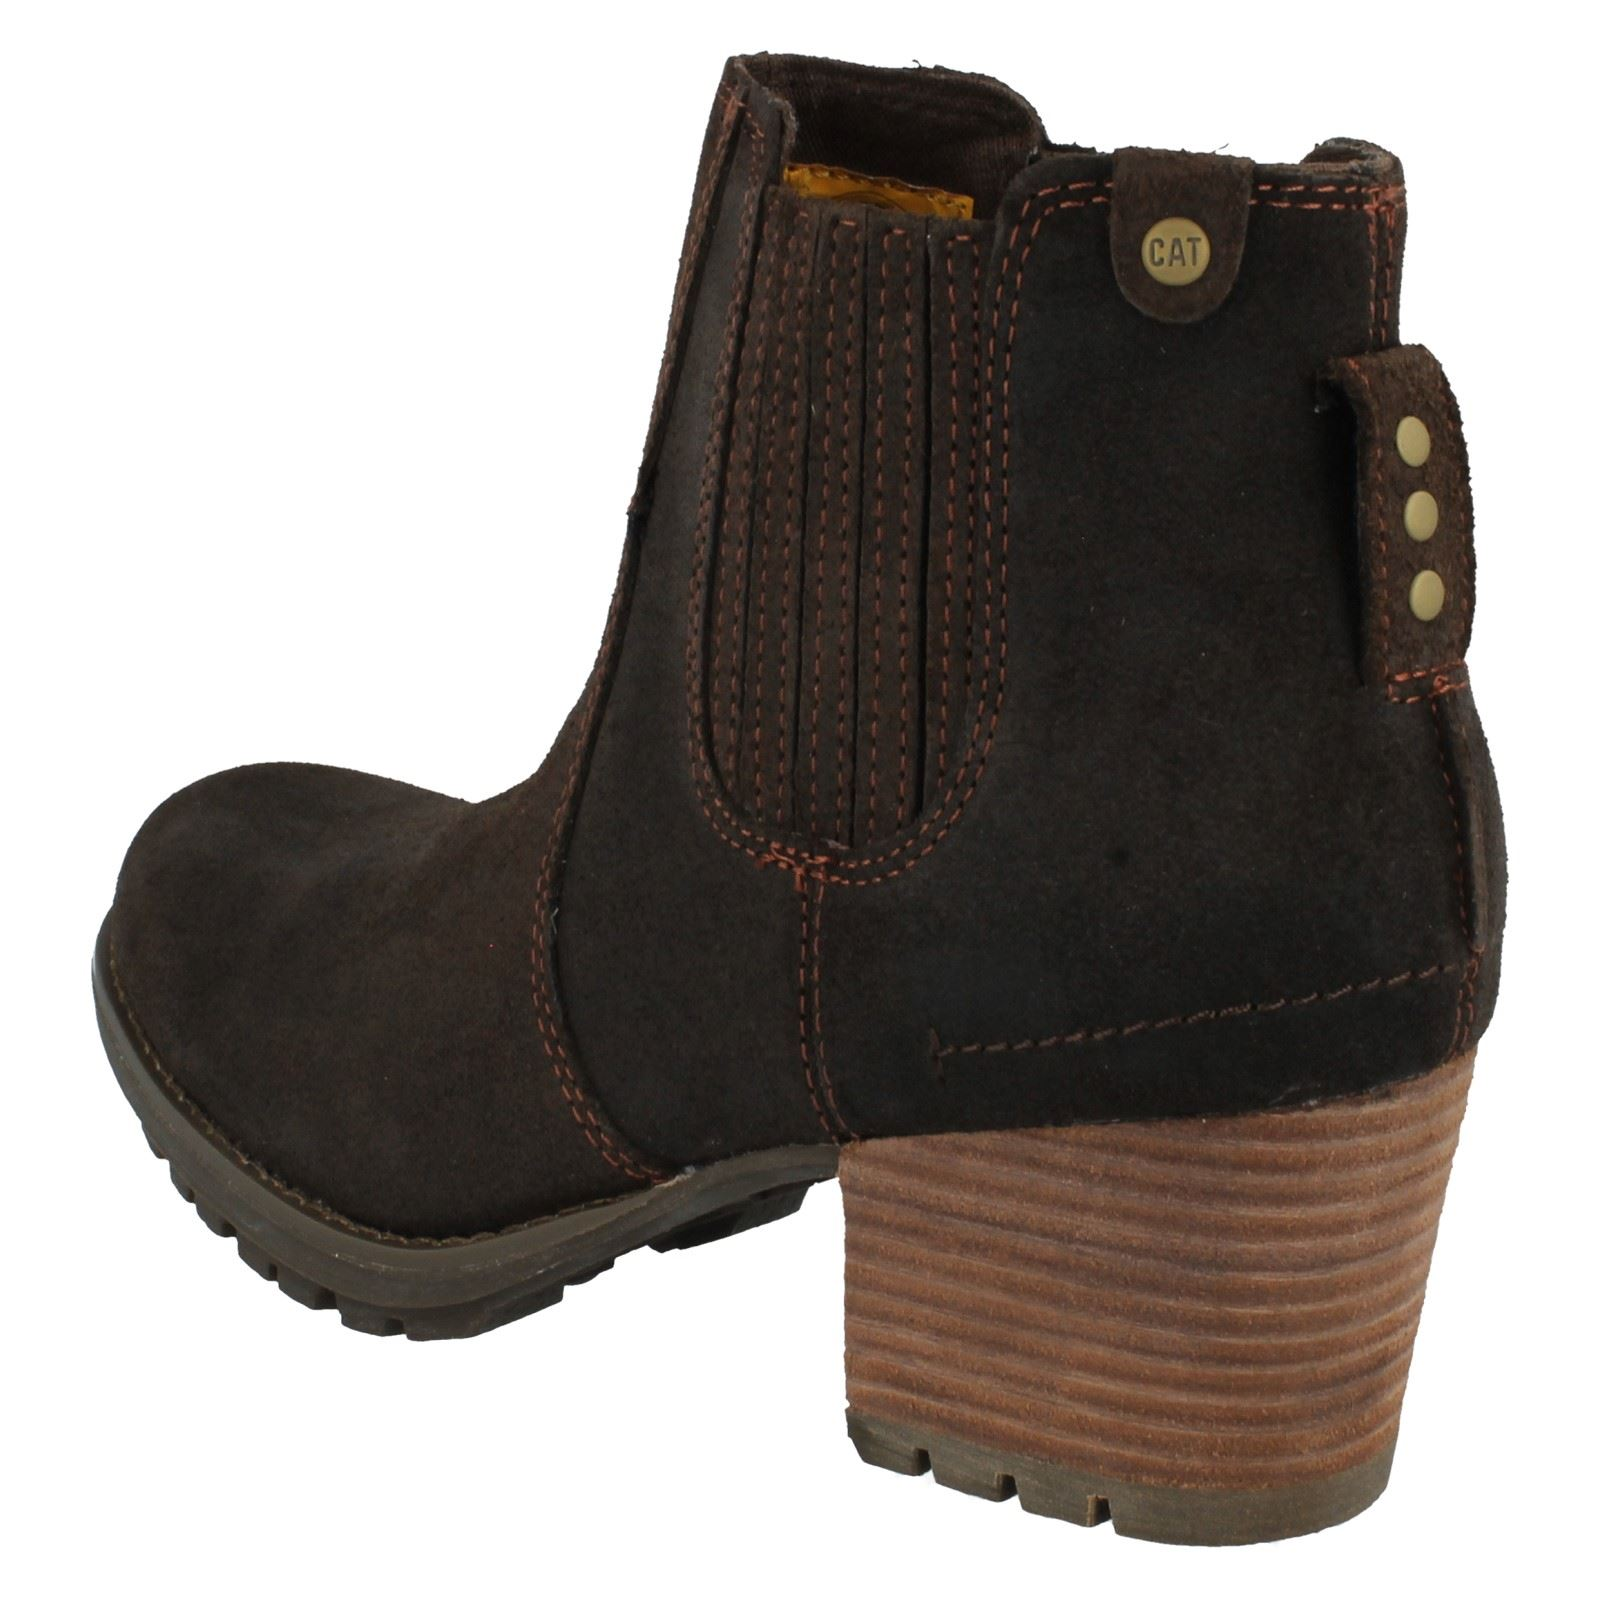 Womens Caterpillar Boots Style Style Style - Allison 8745a4